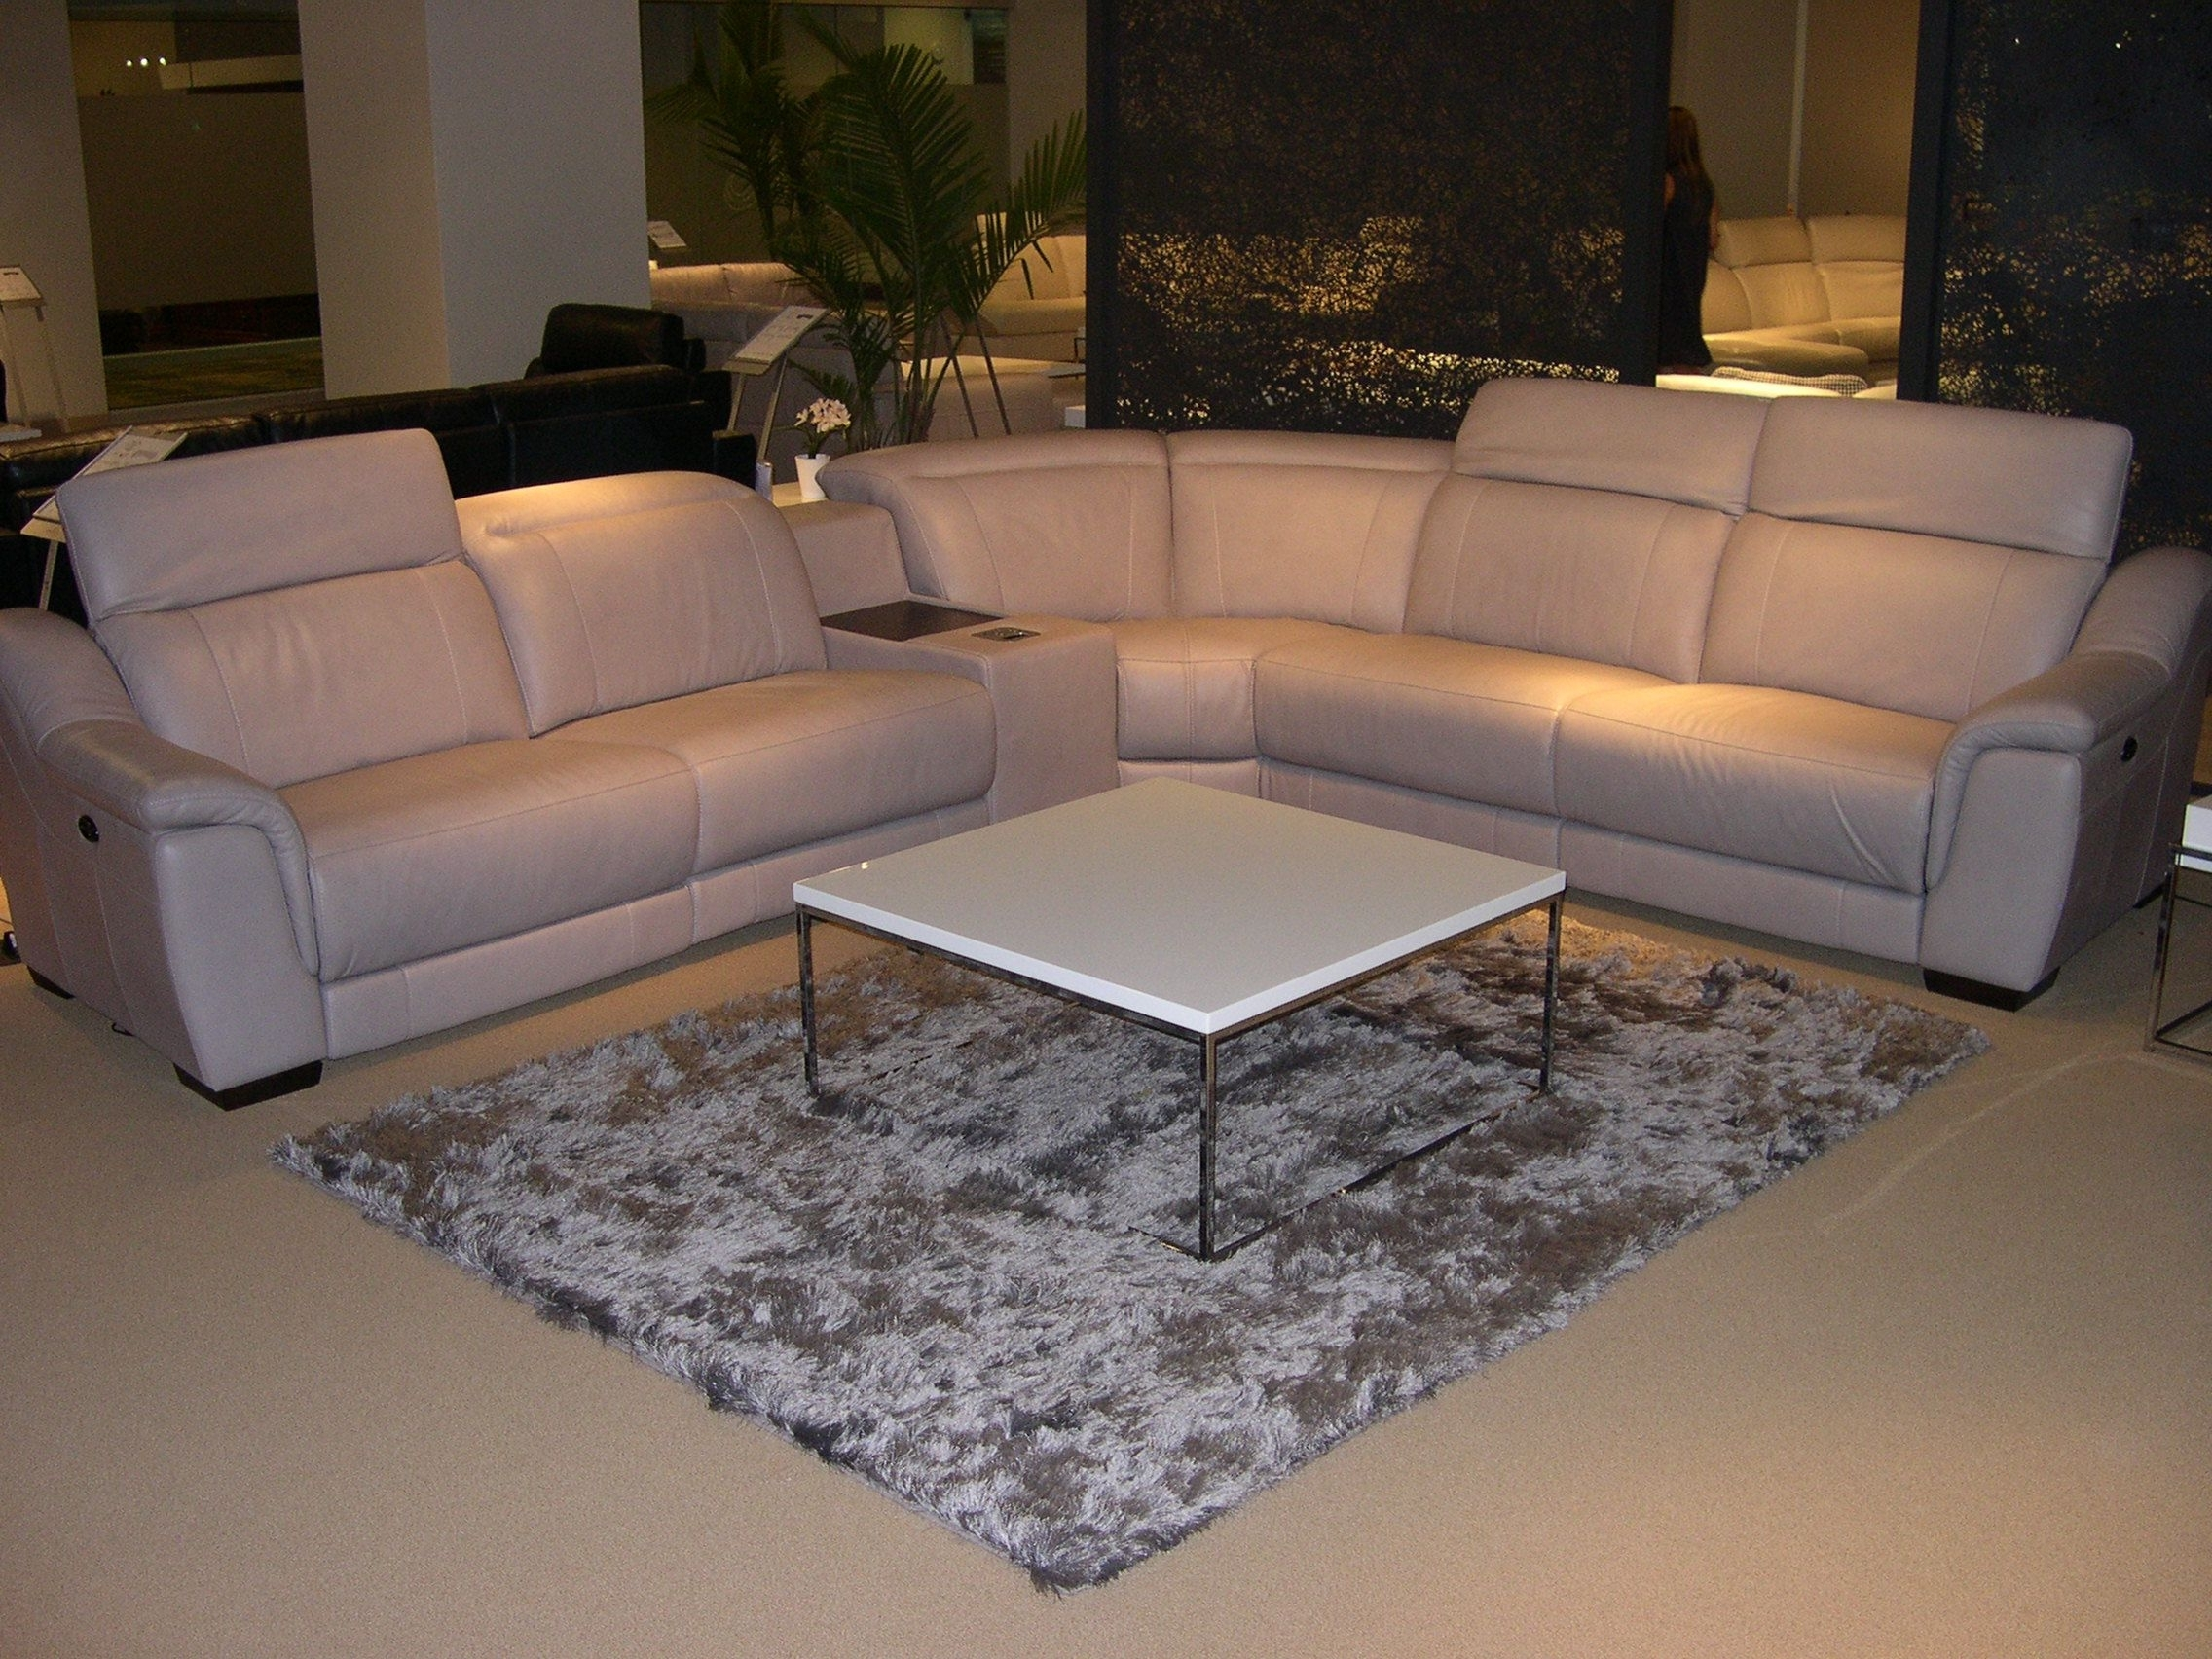 Las Vegas Sectional Sofas Pertaining To 2019 Htl Leather Sectional – Adjustable Headrests (View 7 of 20)